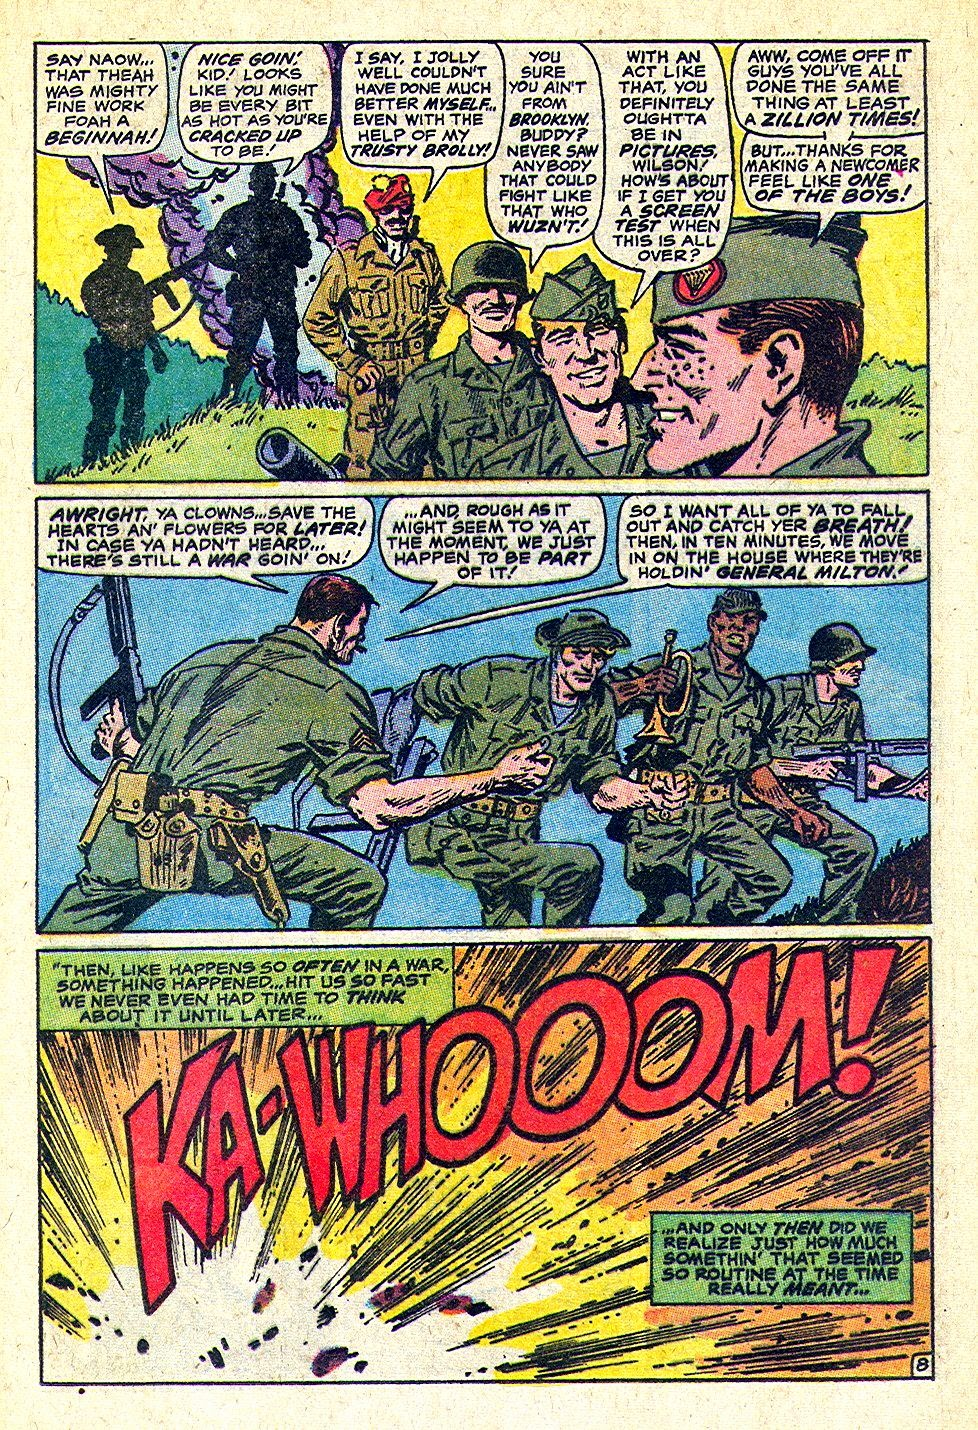 The Bronze Age Of Blogs Sgt Fury And His Howling Commandos Hi Hansithe Codes Do Point To An Electrical Problem With Transfer Macho Dialogue Youd Expect But Then Laughing Stops Dead Under Radar In A Book Certainly Our Gang Werent Buying This Ones Bit